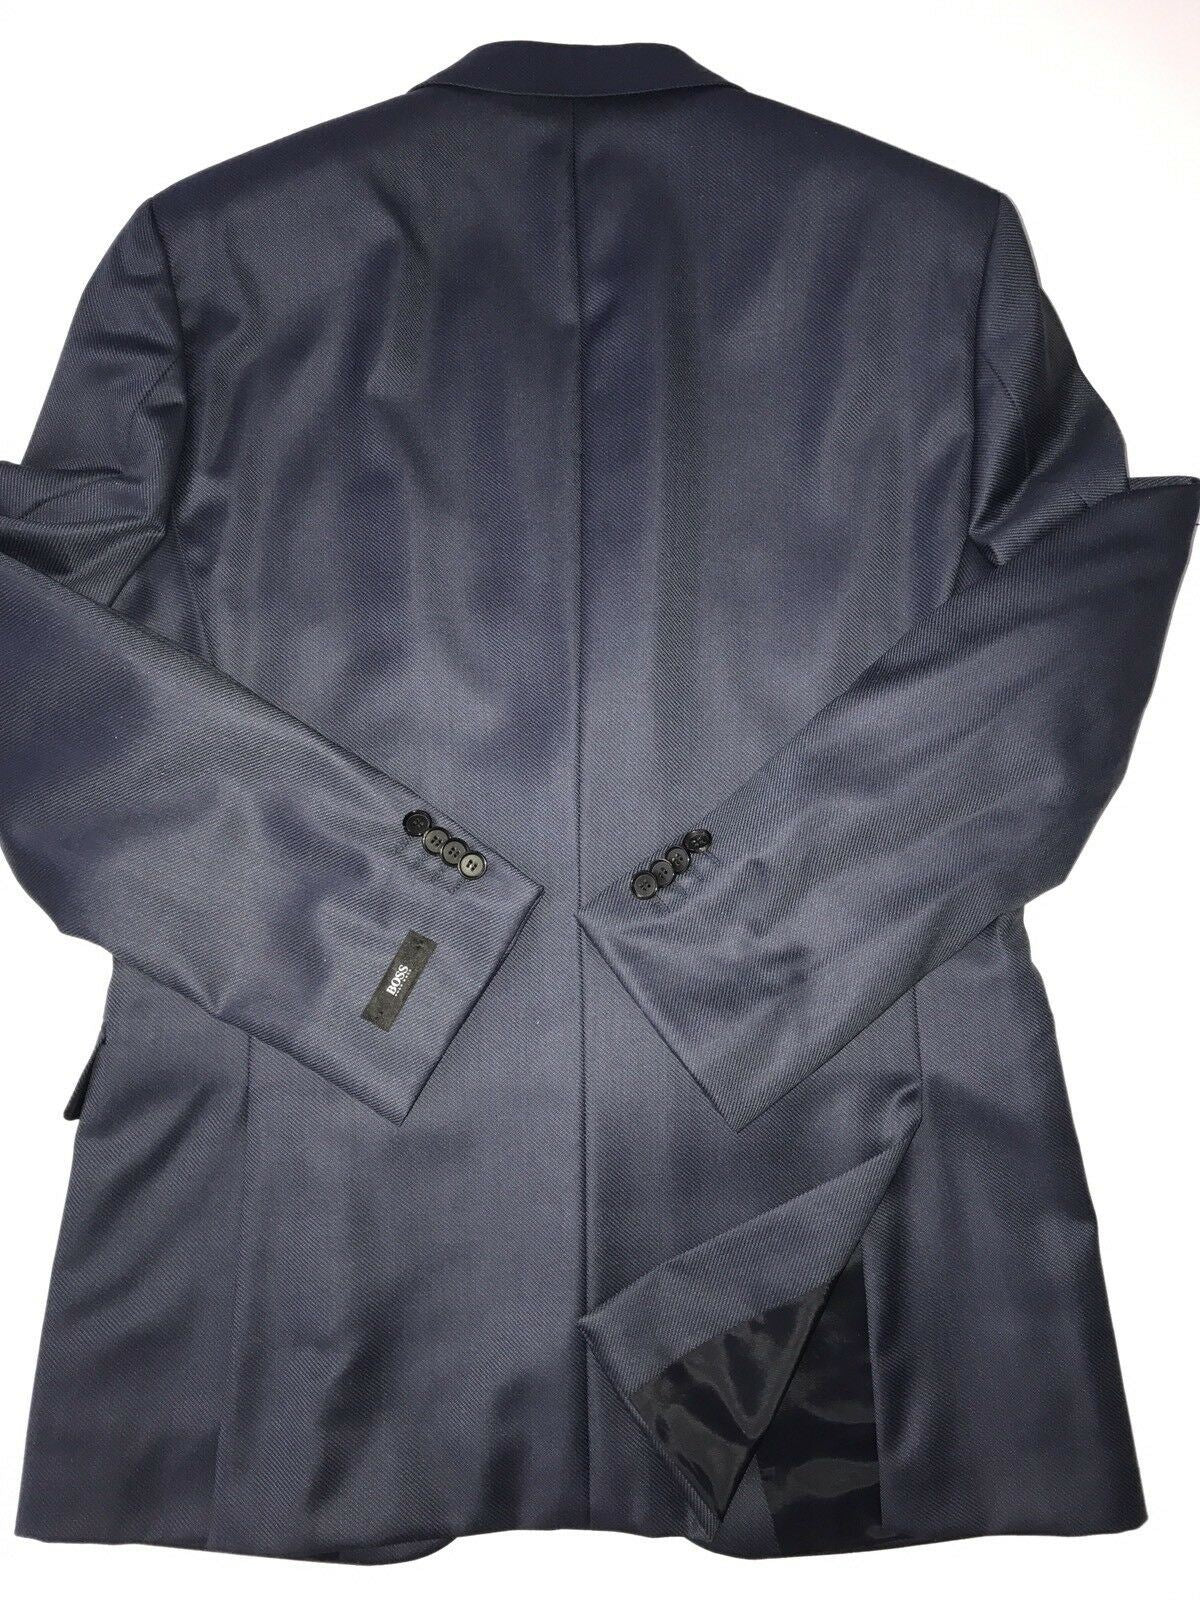 434ca6378 NWT $695 Boss Hugo Boss Grand Silk / Wool Navy Sport Coat Jacket 38R ...